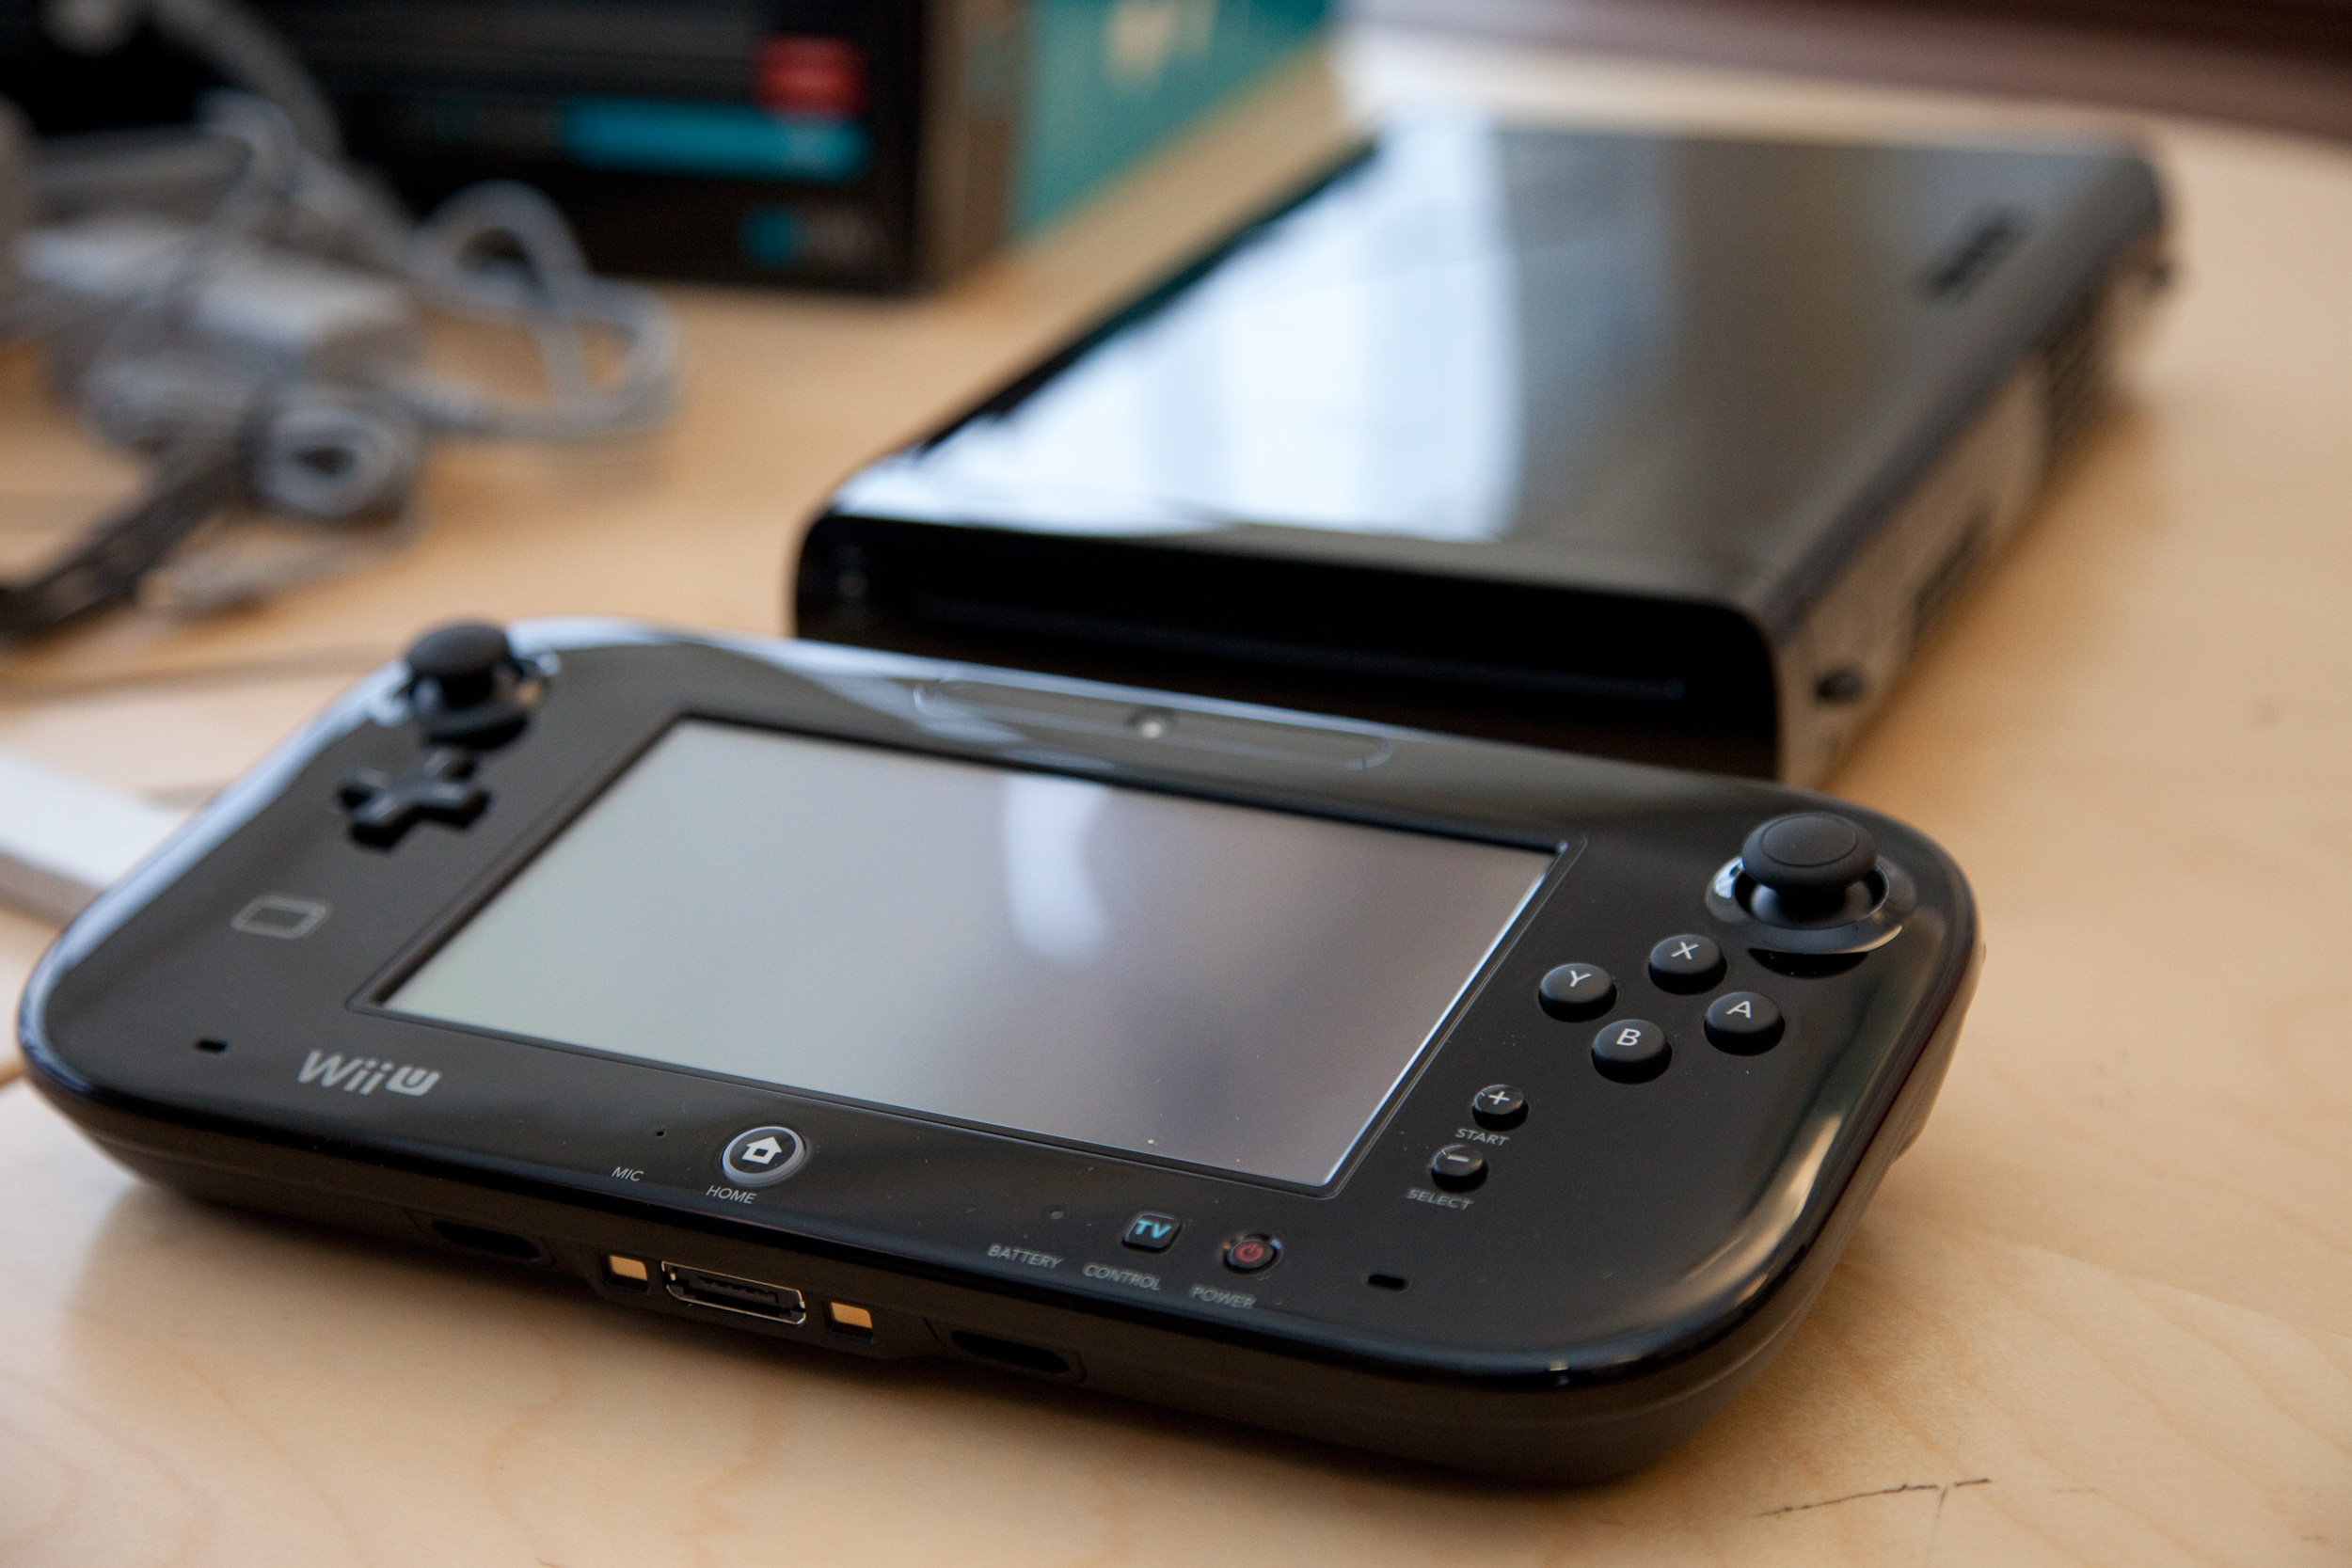 Wii U Price Cuts Not Working Claim UK Retailers